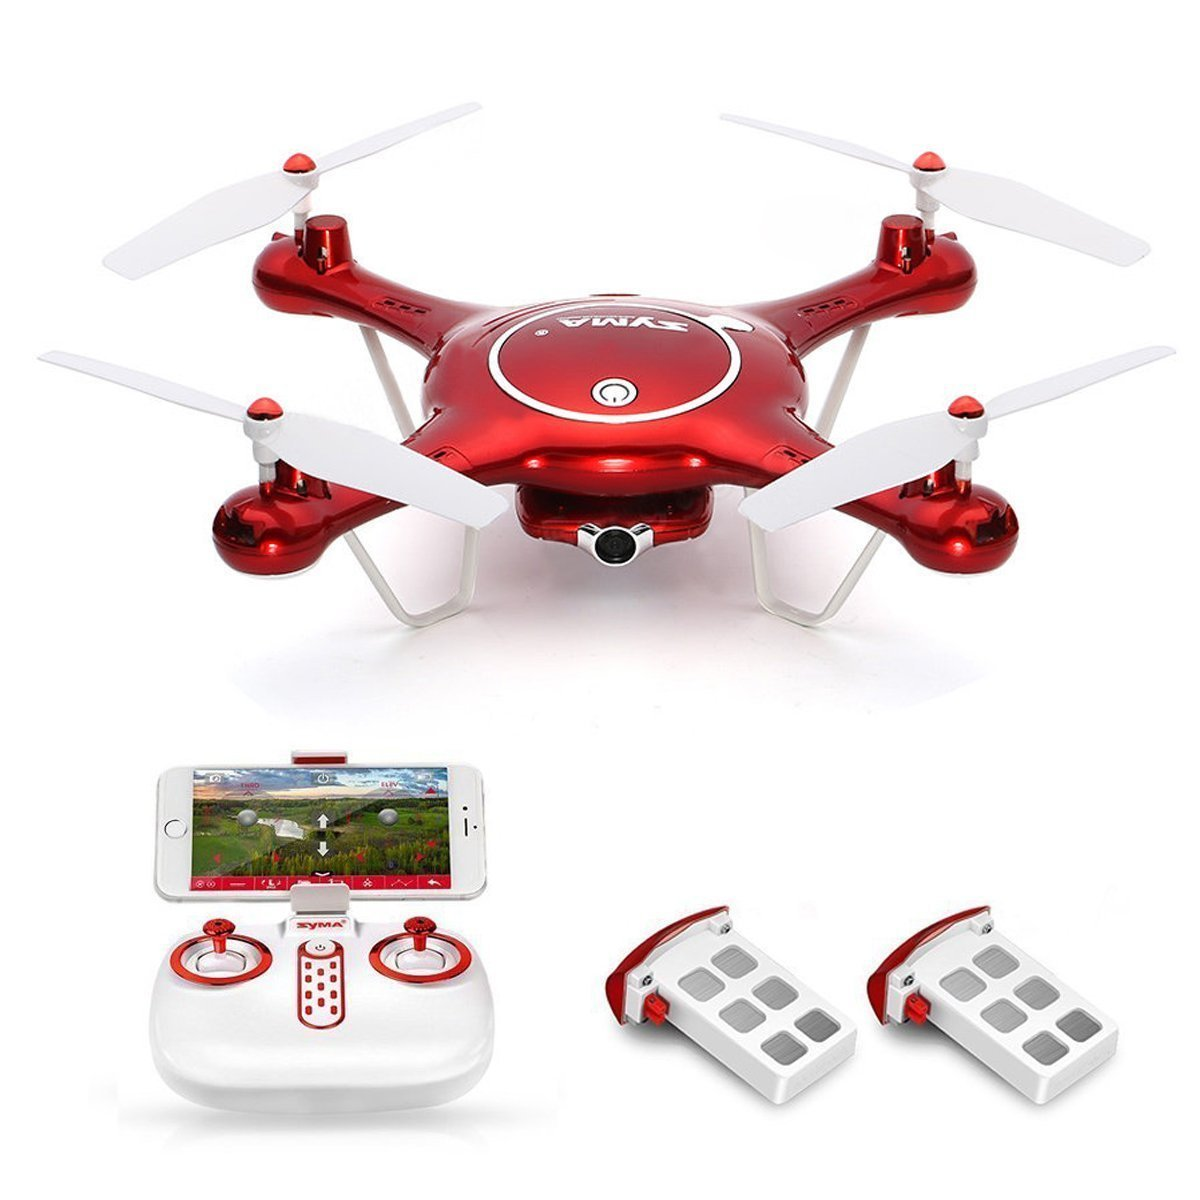 Syma X5UW Wifi FPV Drone with 720P HD Camera Live Video, Barometer Set Height, H/L Speed+ 2pcs Extra Battery RTF RC Quadcopter original syma x8sw wifi fpv hd camera drone 2 4g 4ch 6 axis rc quadcopter with barometer set height mode rtf toys